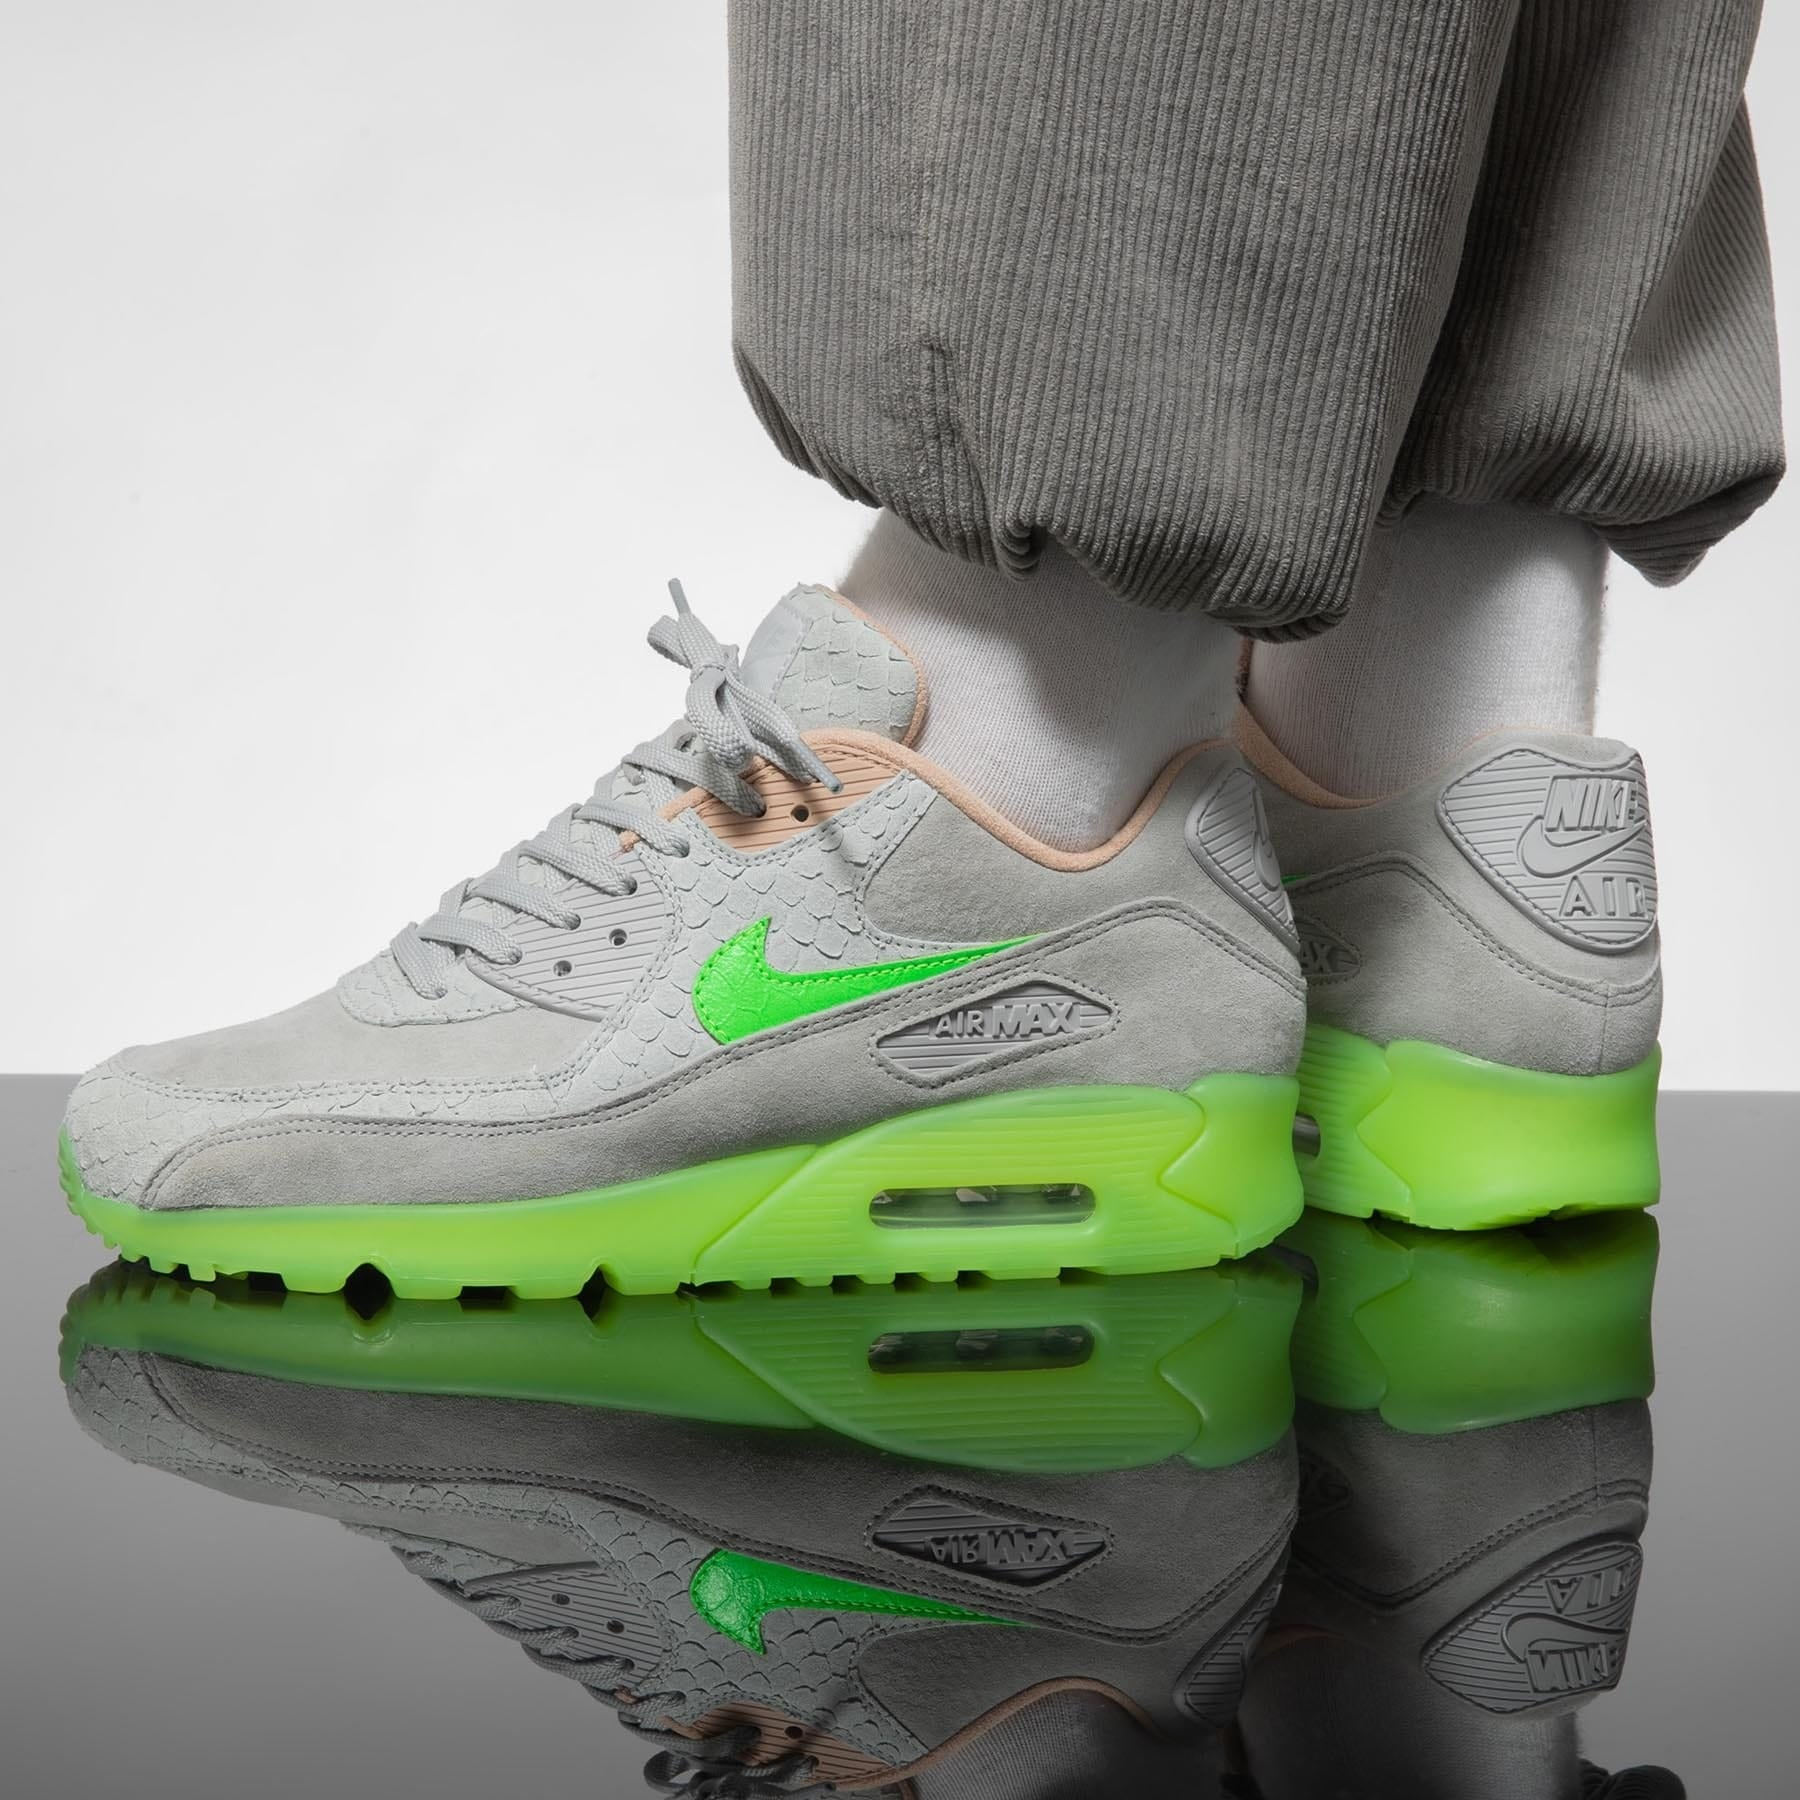 Nike Air Max 90 Premium 'New Species' - Kick Game